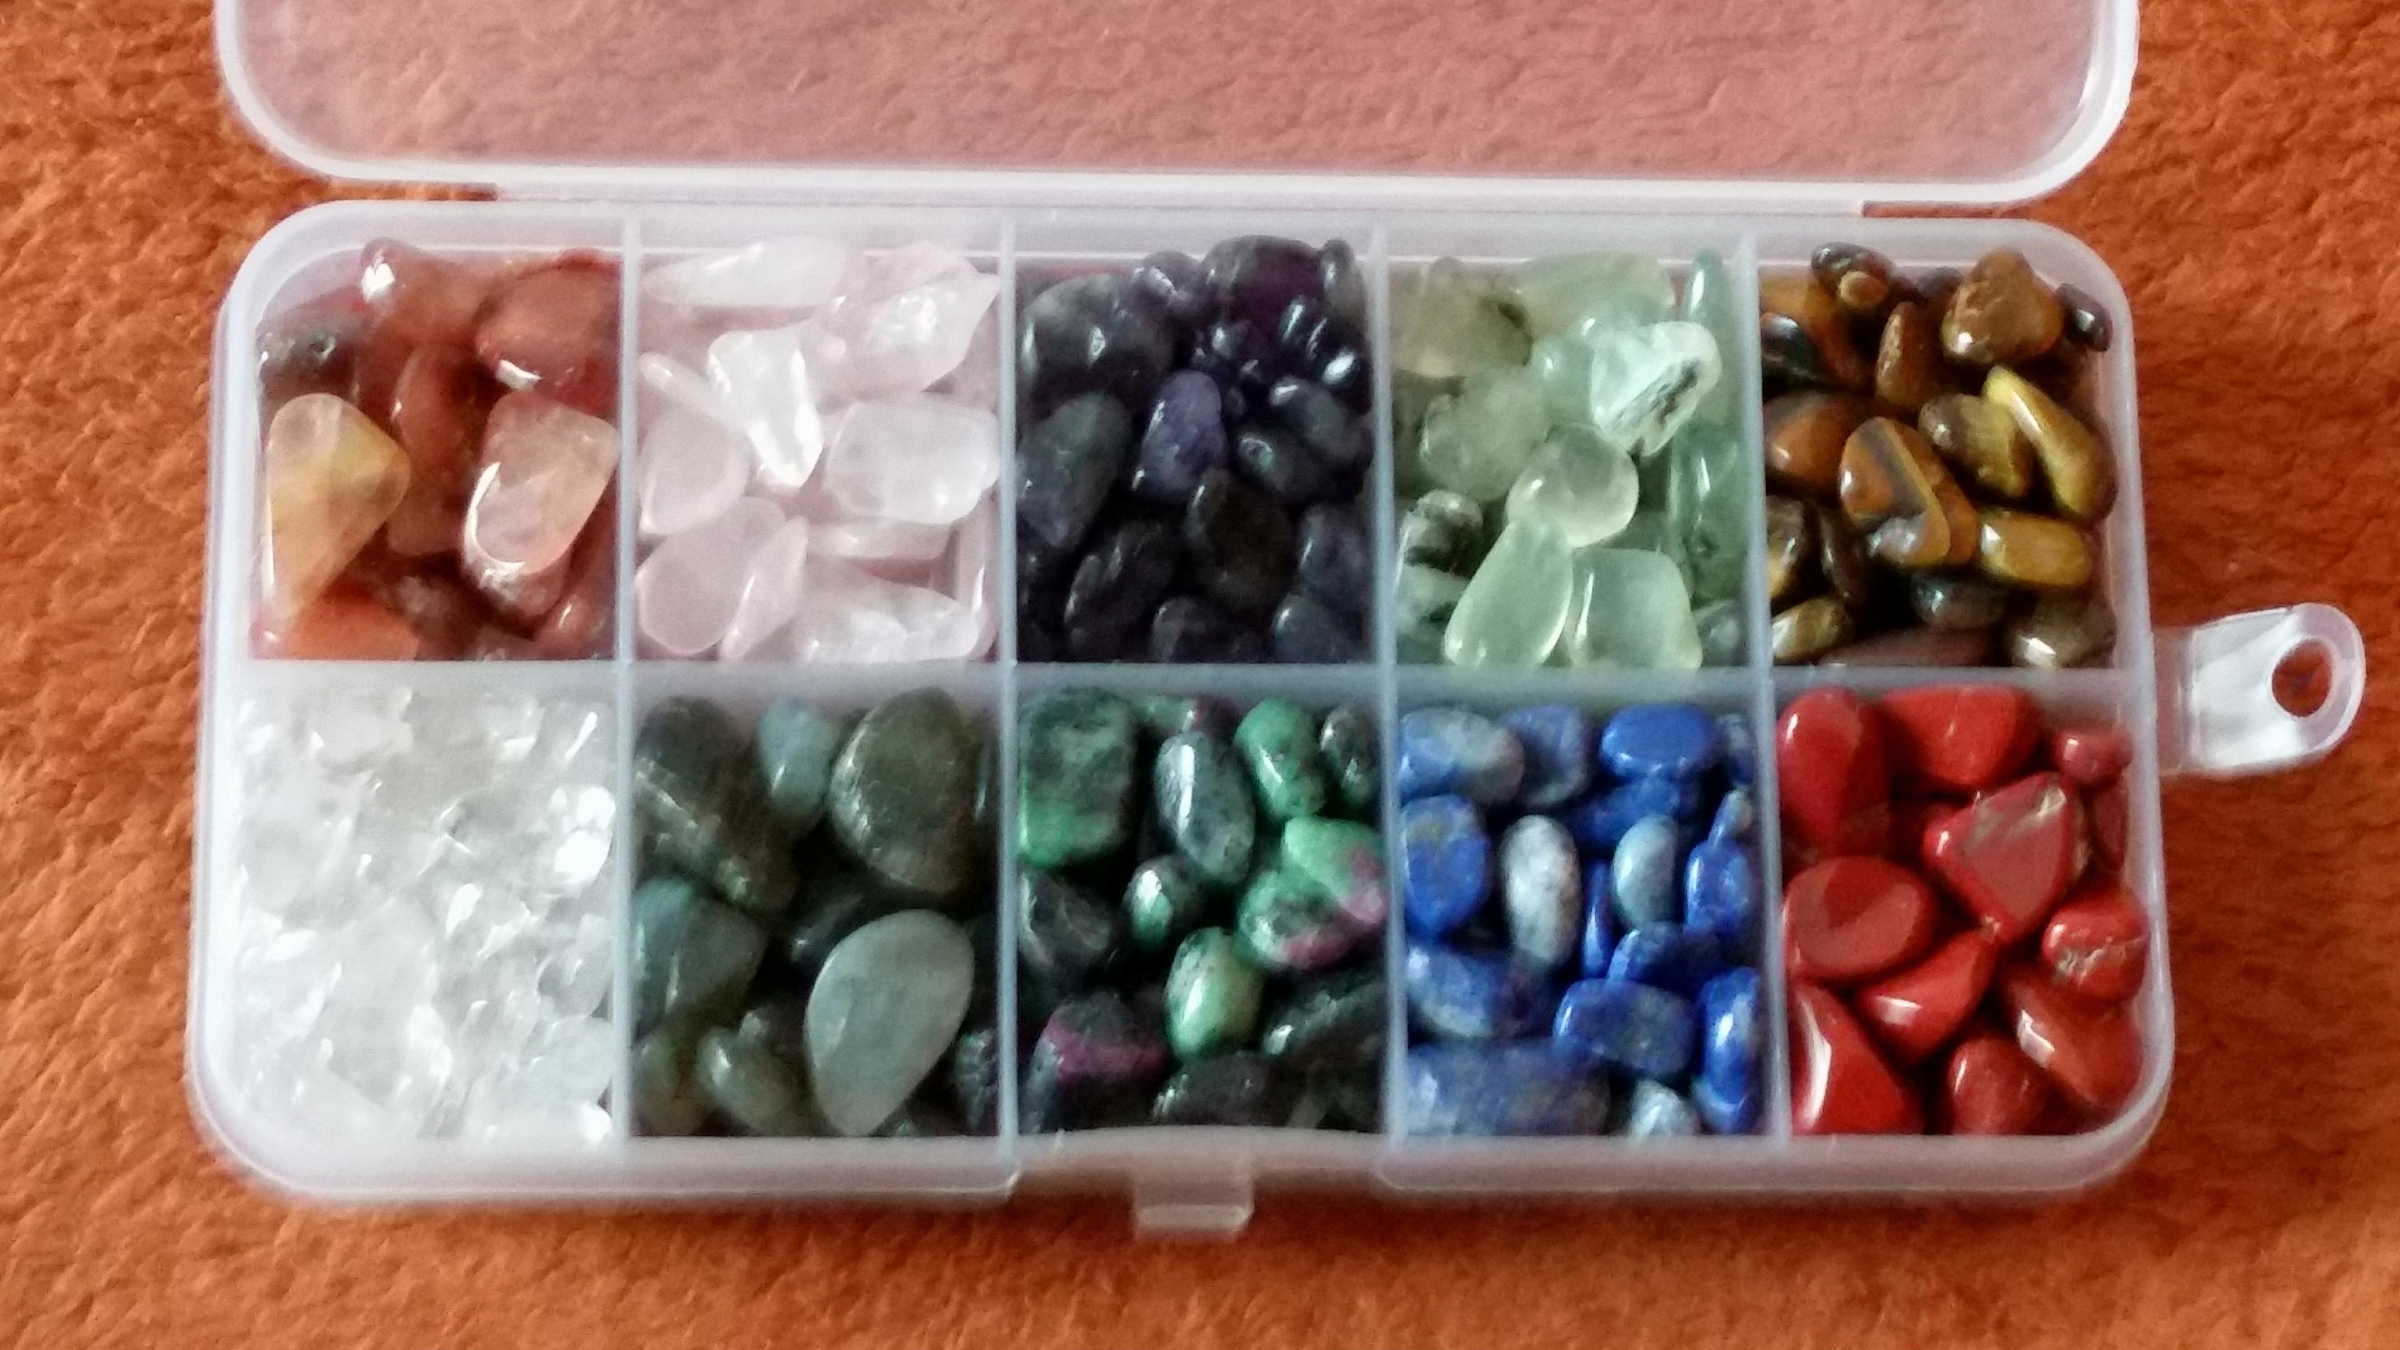 Gorgeous natural stones, 10 different kinds, 10 to 20 of each type, comes with storage case with dividers to keep rocks separate, high quality & smooth!